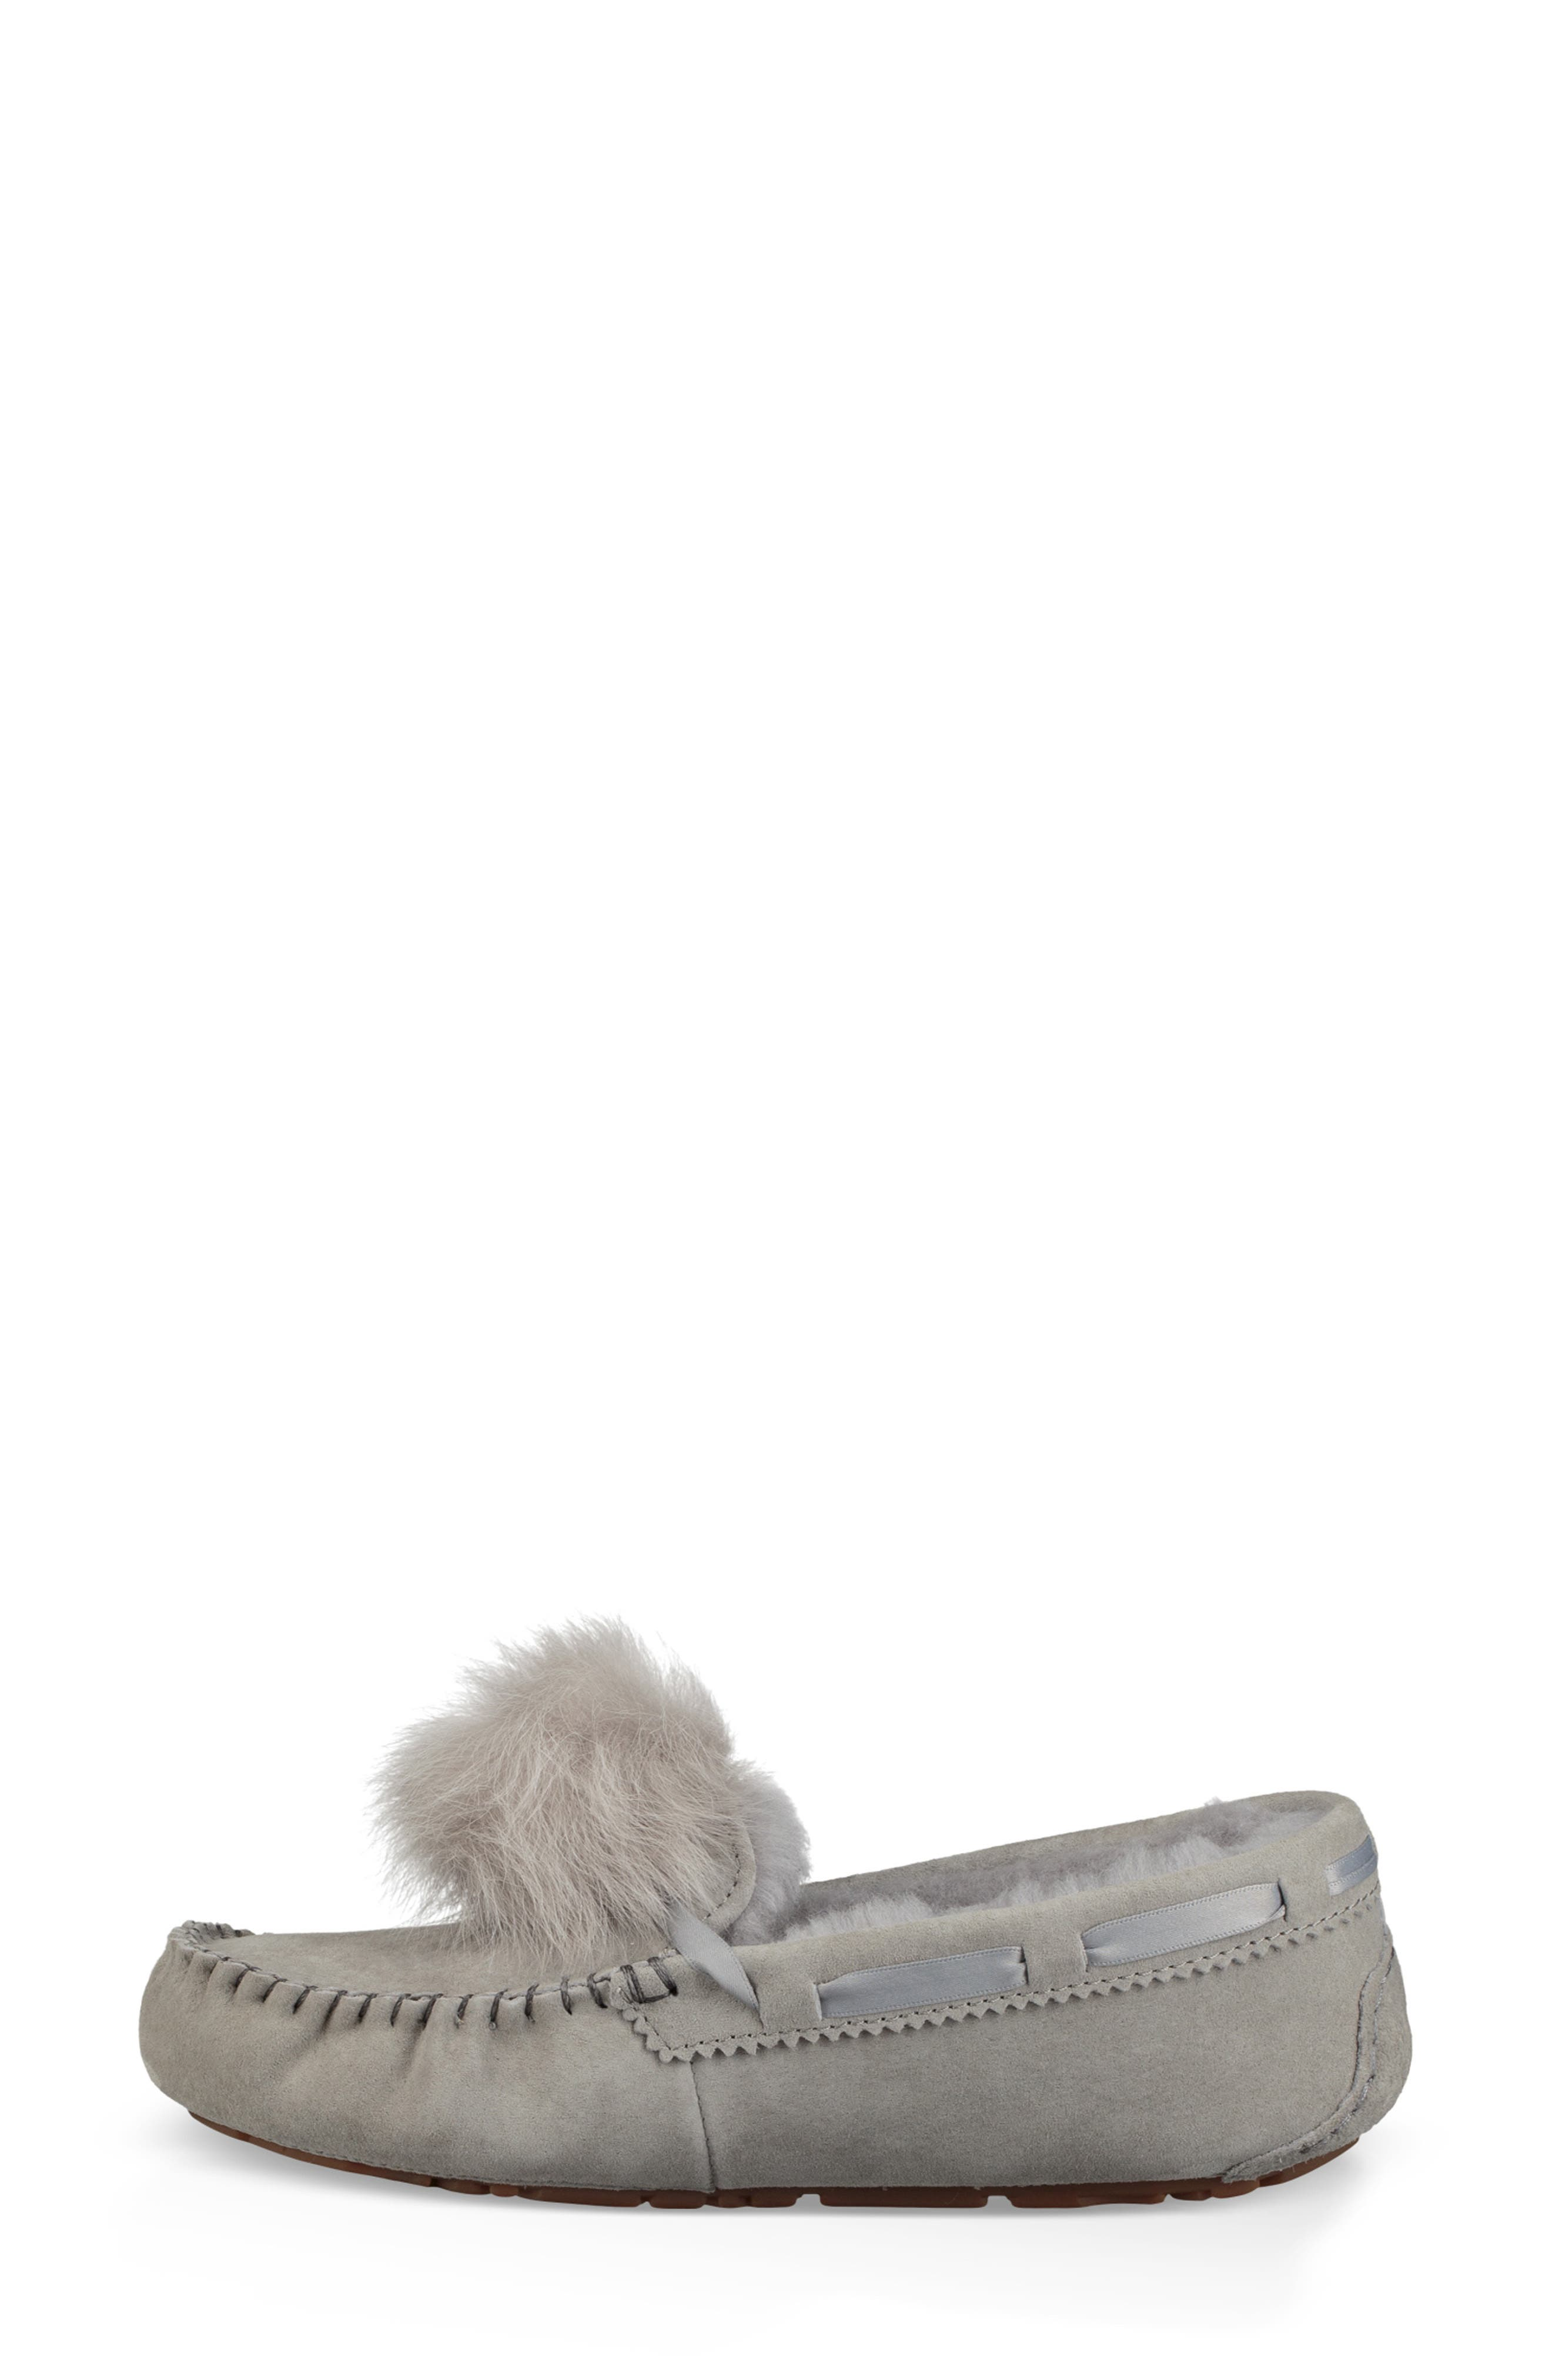 Dakota Water Resistant Genuine Shearling Pompom Slipper,                             Alternate thumbnail 6, color,                             SEAL